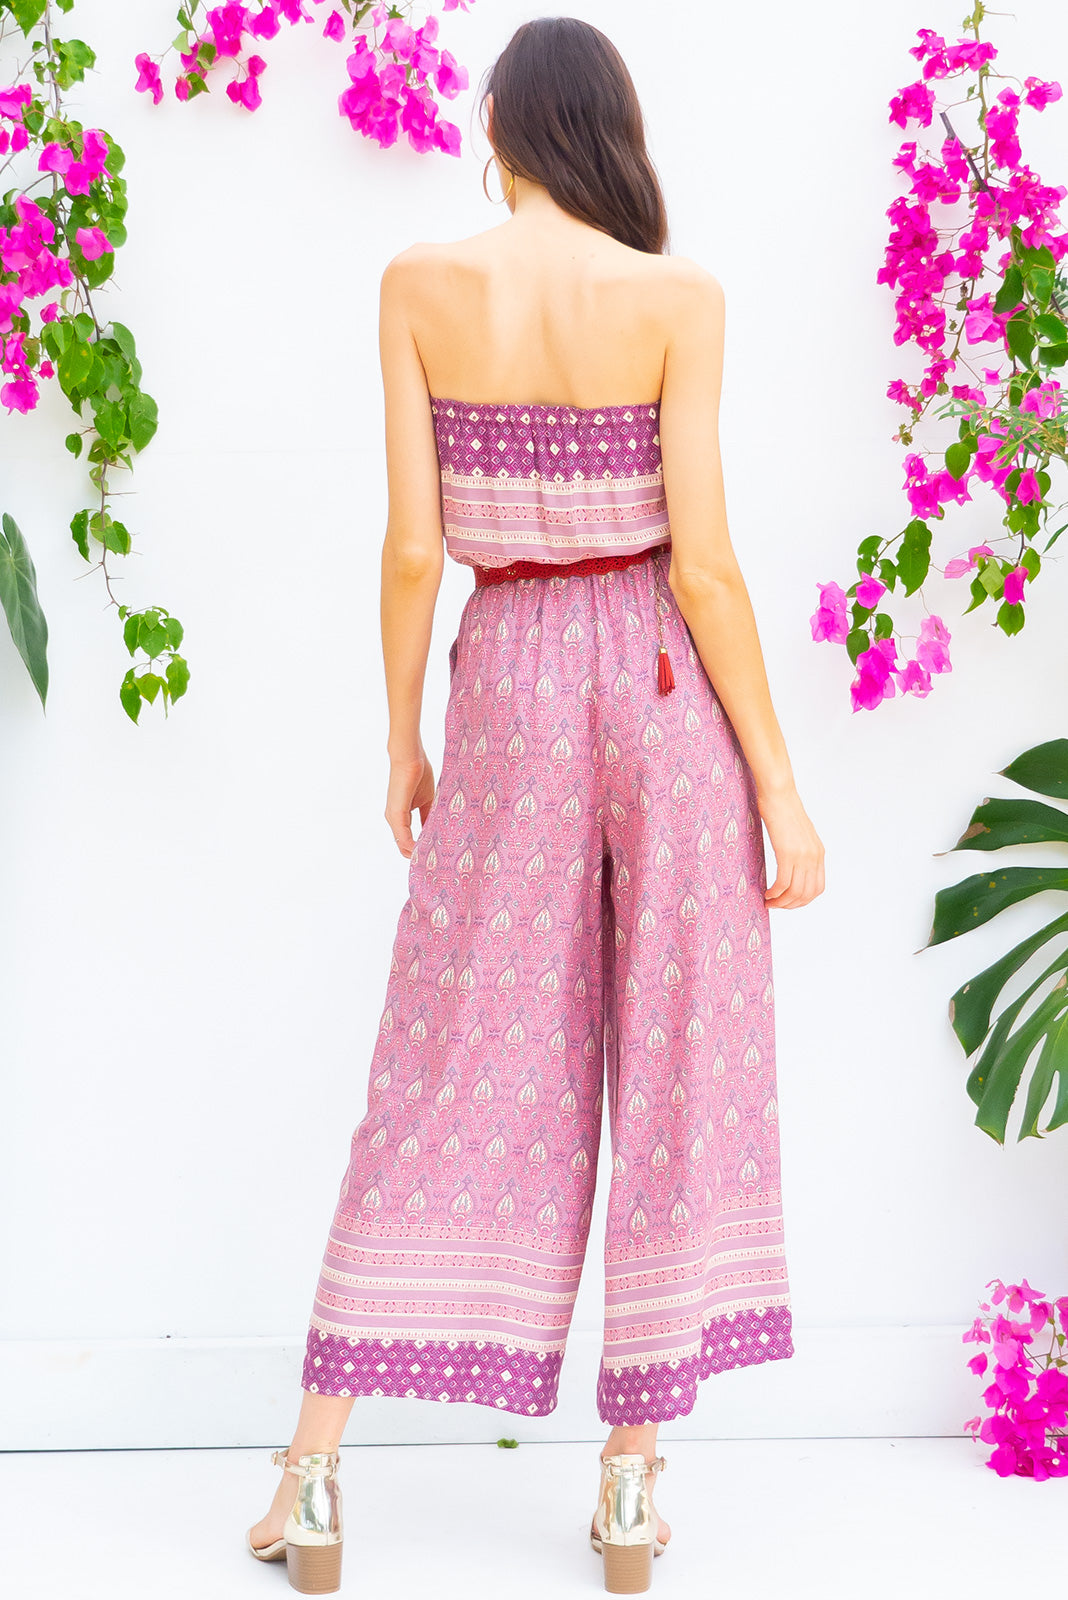 Appleby Amethyst Jumpsuit Strapless full length boho inspired jumpsuit with pockets in a purple toned intricate bohemian border print